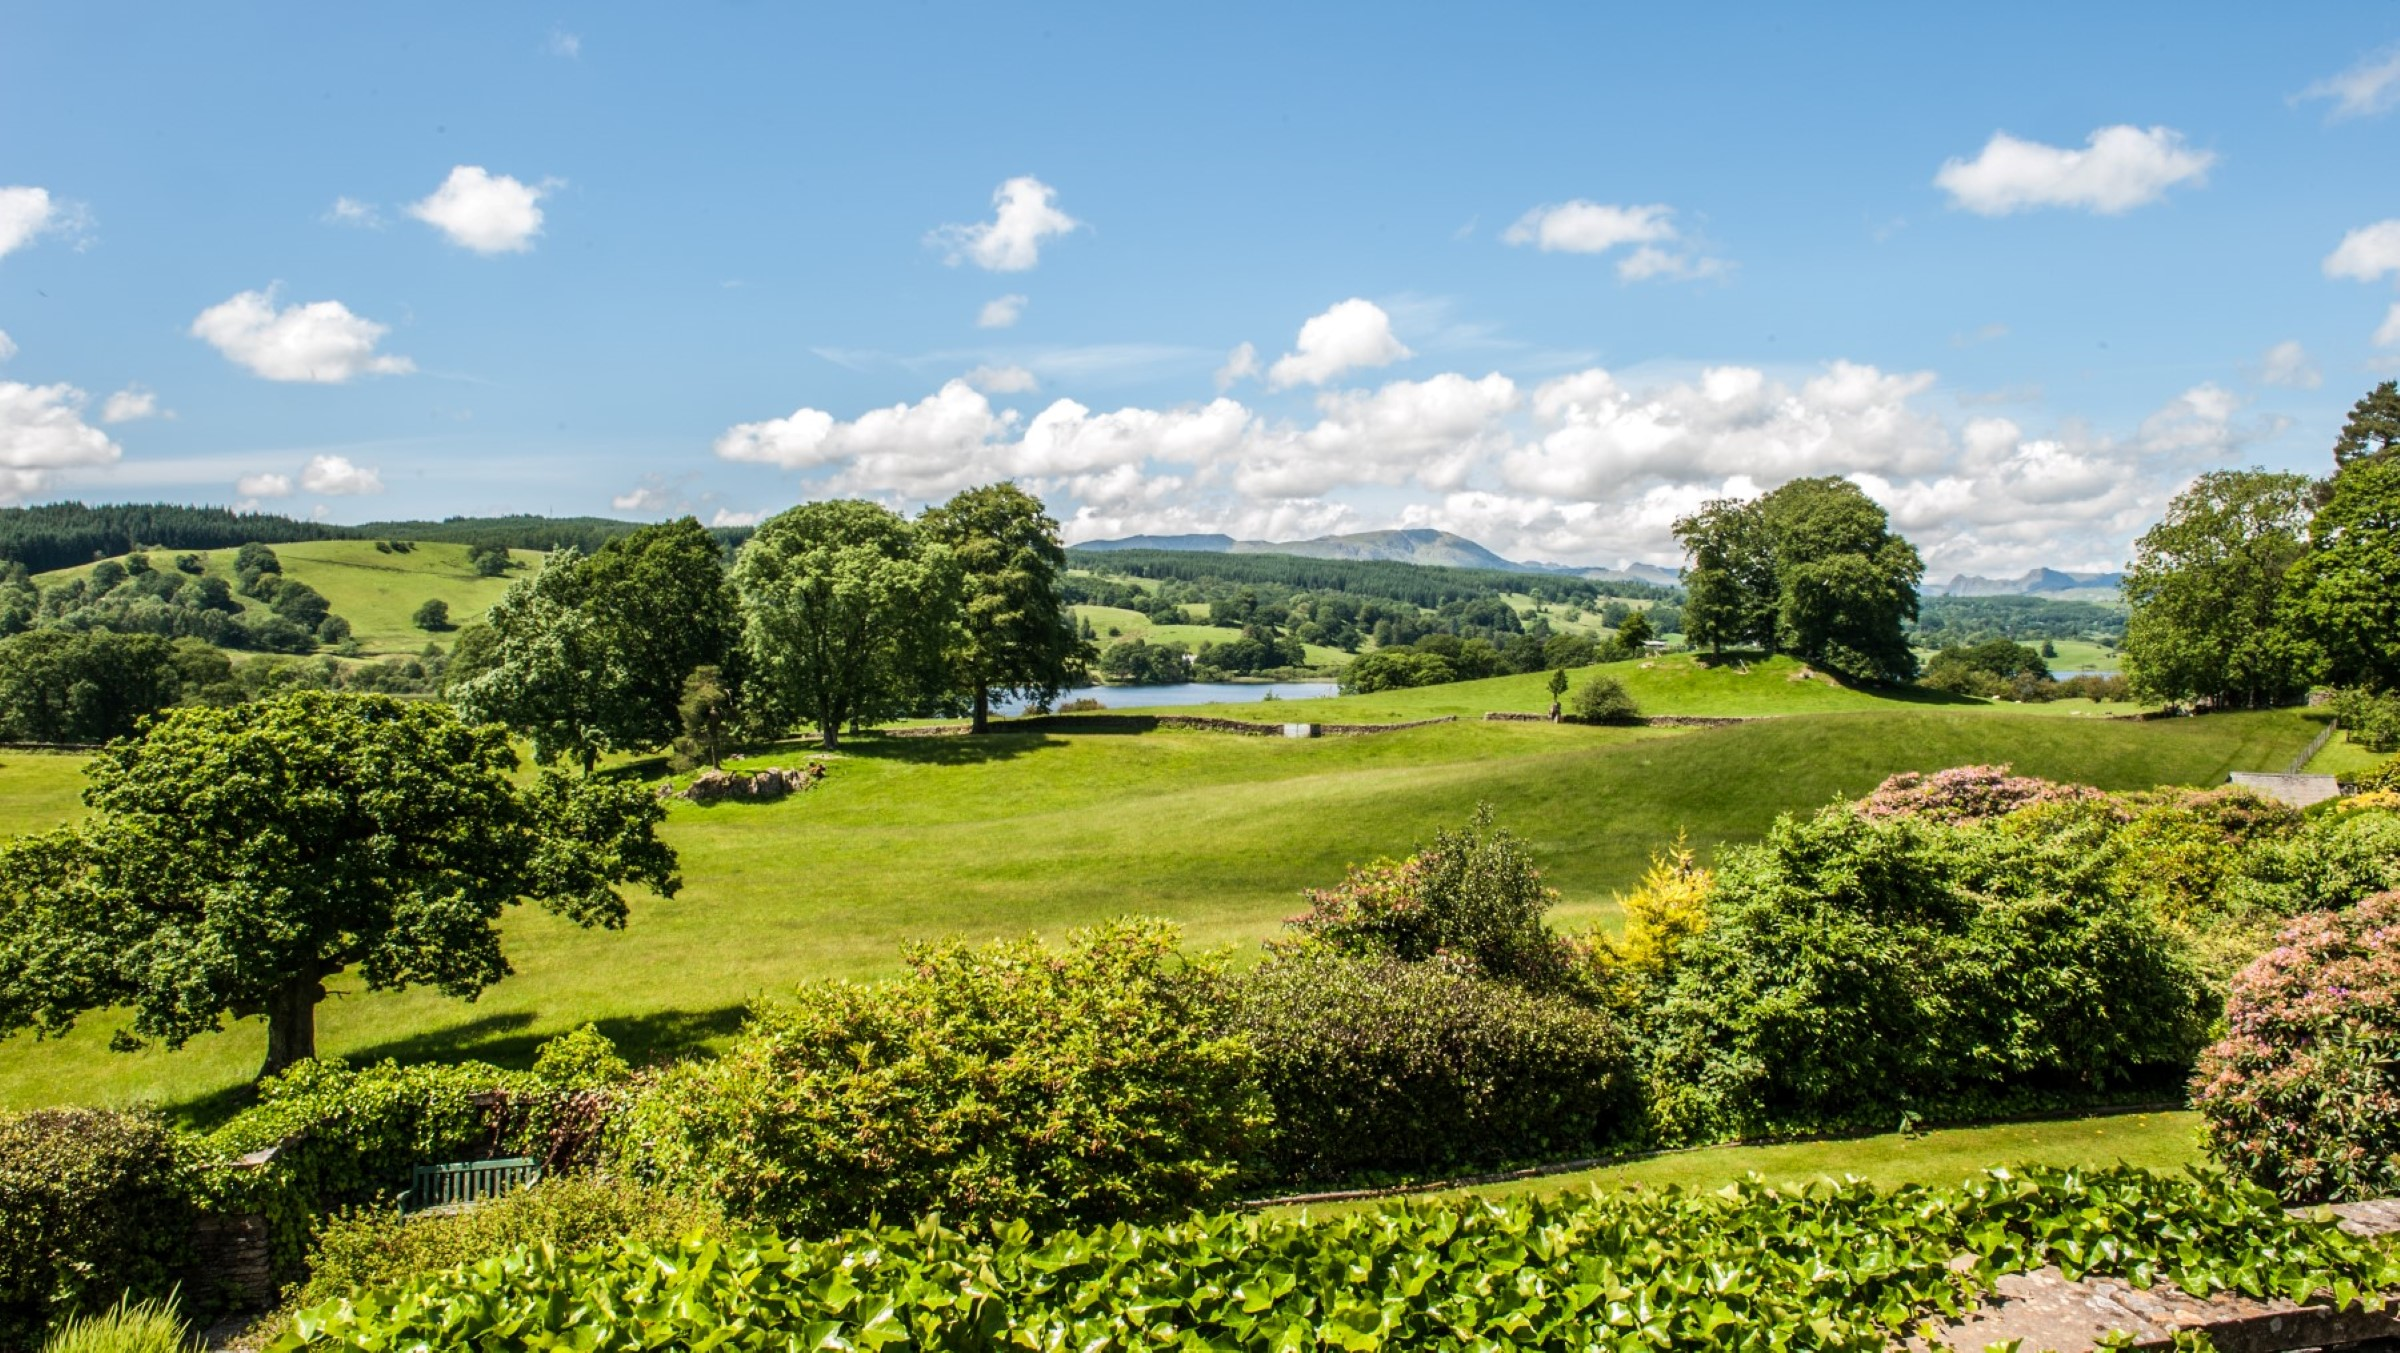 独户住宅 为 销售 在 Lake District Hawkshead Ambleside Lake District, 英格兰, LA220JZ 英国